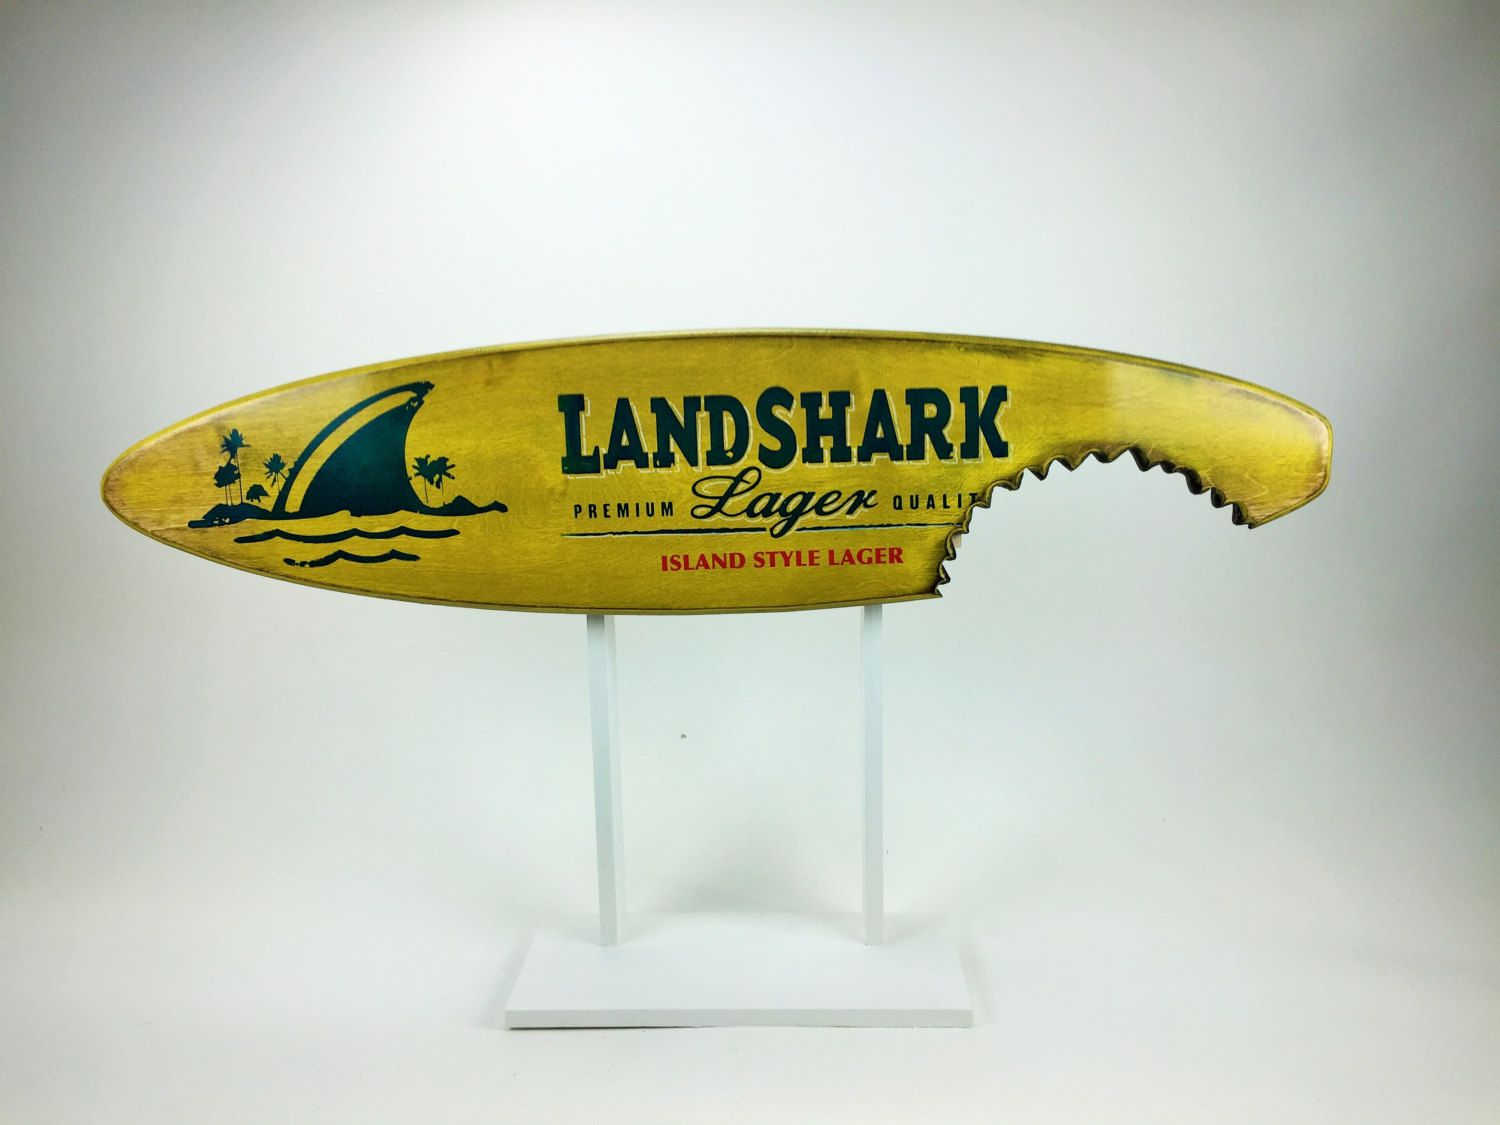 Landshark Surfboard wall hanging surfboard decor OBX Wood surfing ...